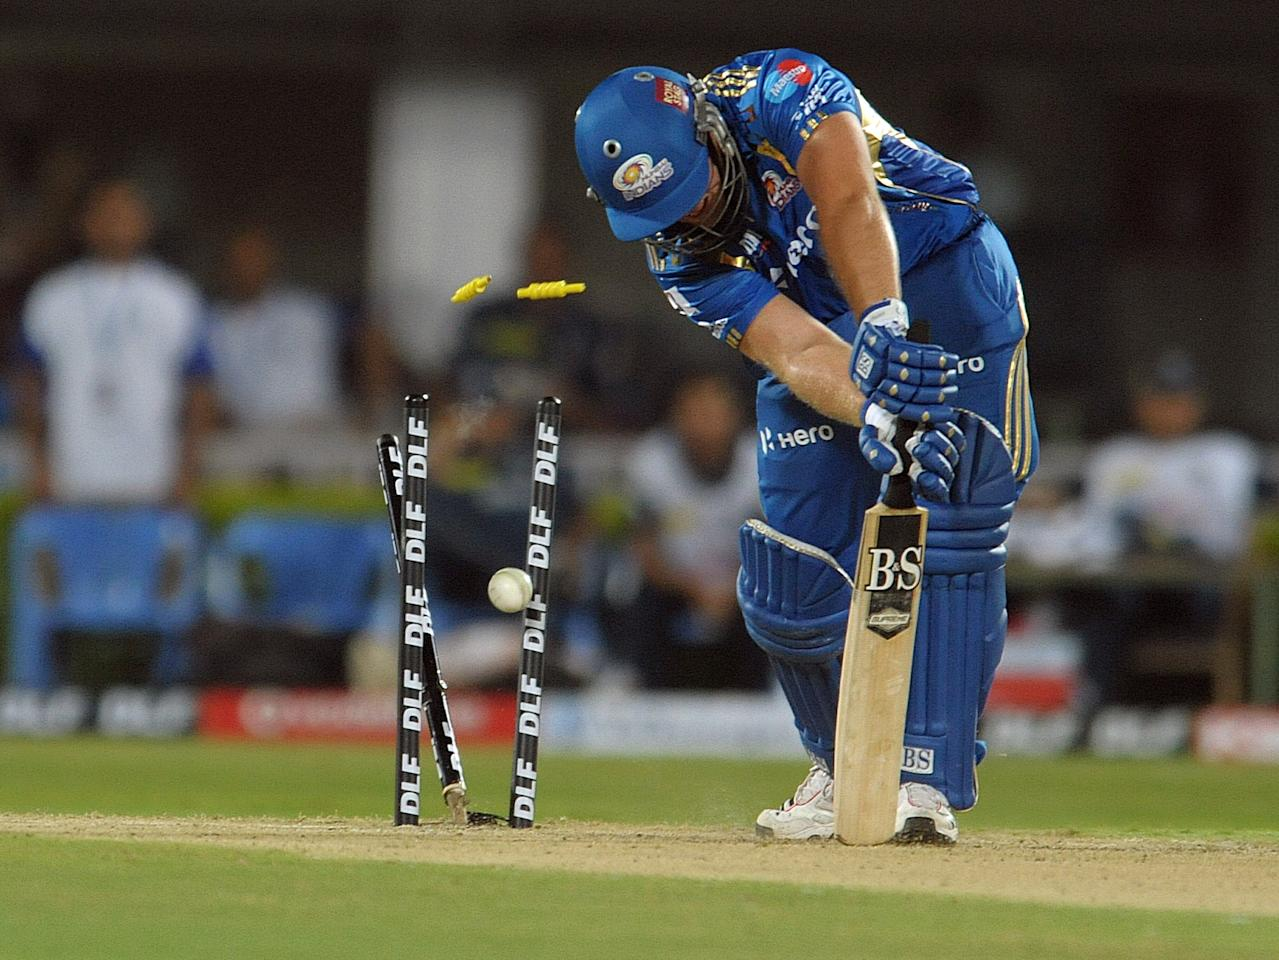 Mumbai Indians  Richard Levi is bowld by Deccan Chargers  Dale Steyn during the IPL Twenty20  match  at Dr. Y.S. Rajasekhara Reddy Cricket Stadium in Visakhapatnam on April 9, 2012.AFP PHOTO / Noah SEELAM.RESTRICTED TO EDITORIAL USE. MOBILE USE WITHIN NEWS PACKAGE. ... (Photo credit should read NOAH SEELAM/AFP/Getty Images)